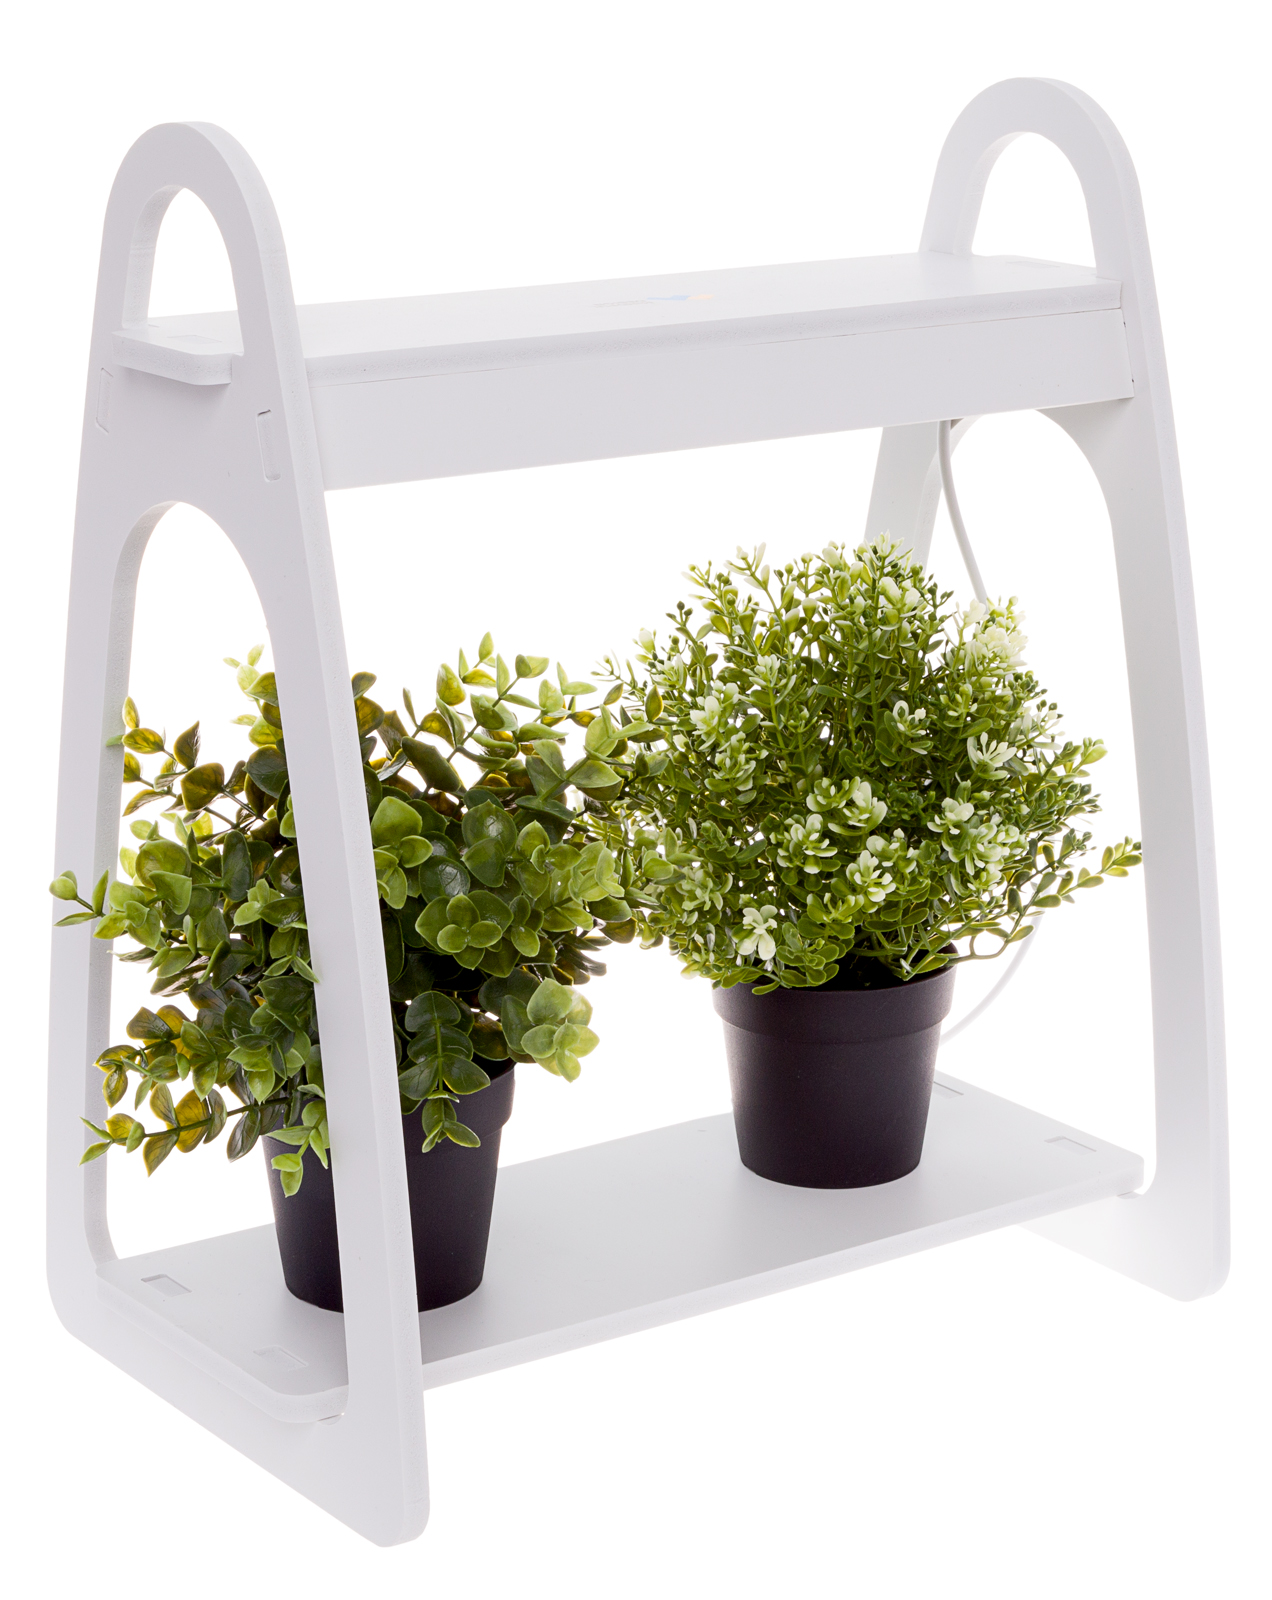 Mindful Design White Led Indoor At Home Mini Planter Counter Top Herb Garden Kit